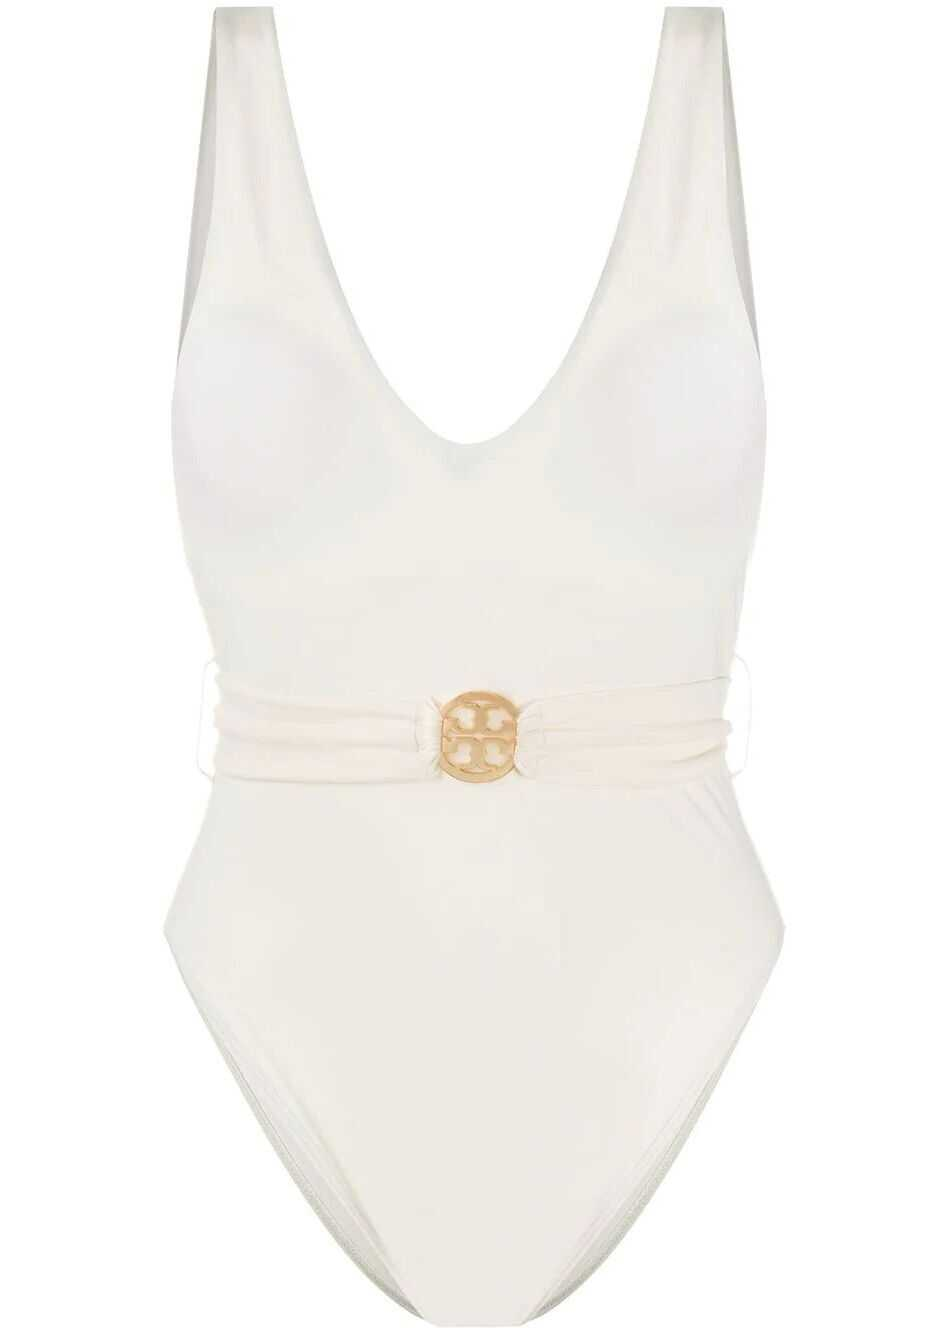 Tory Burch Polyester One-Piece Suit WHITE